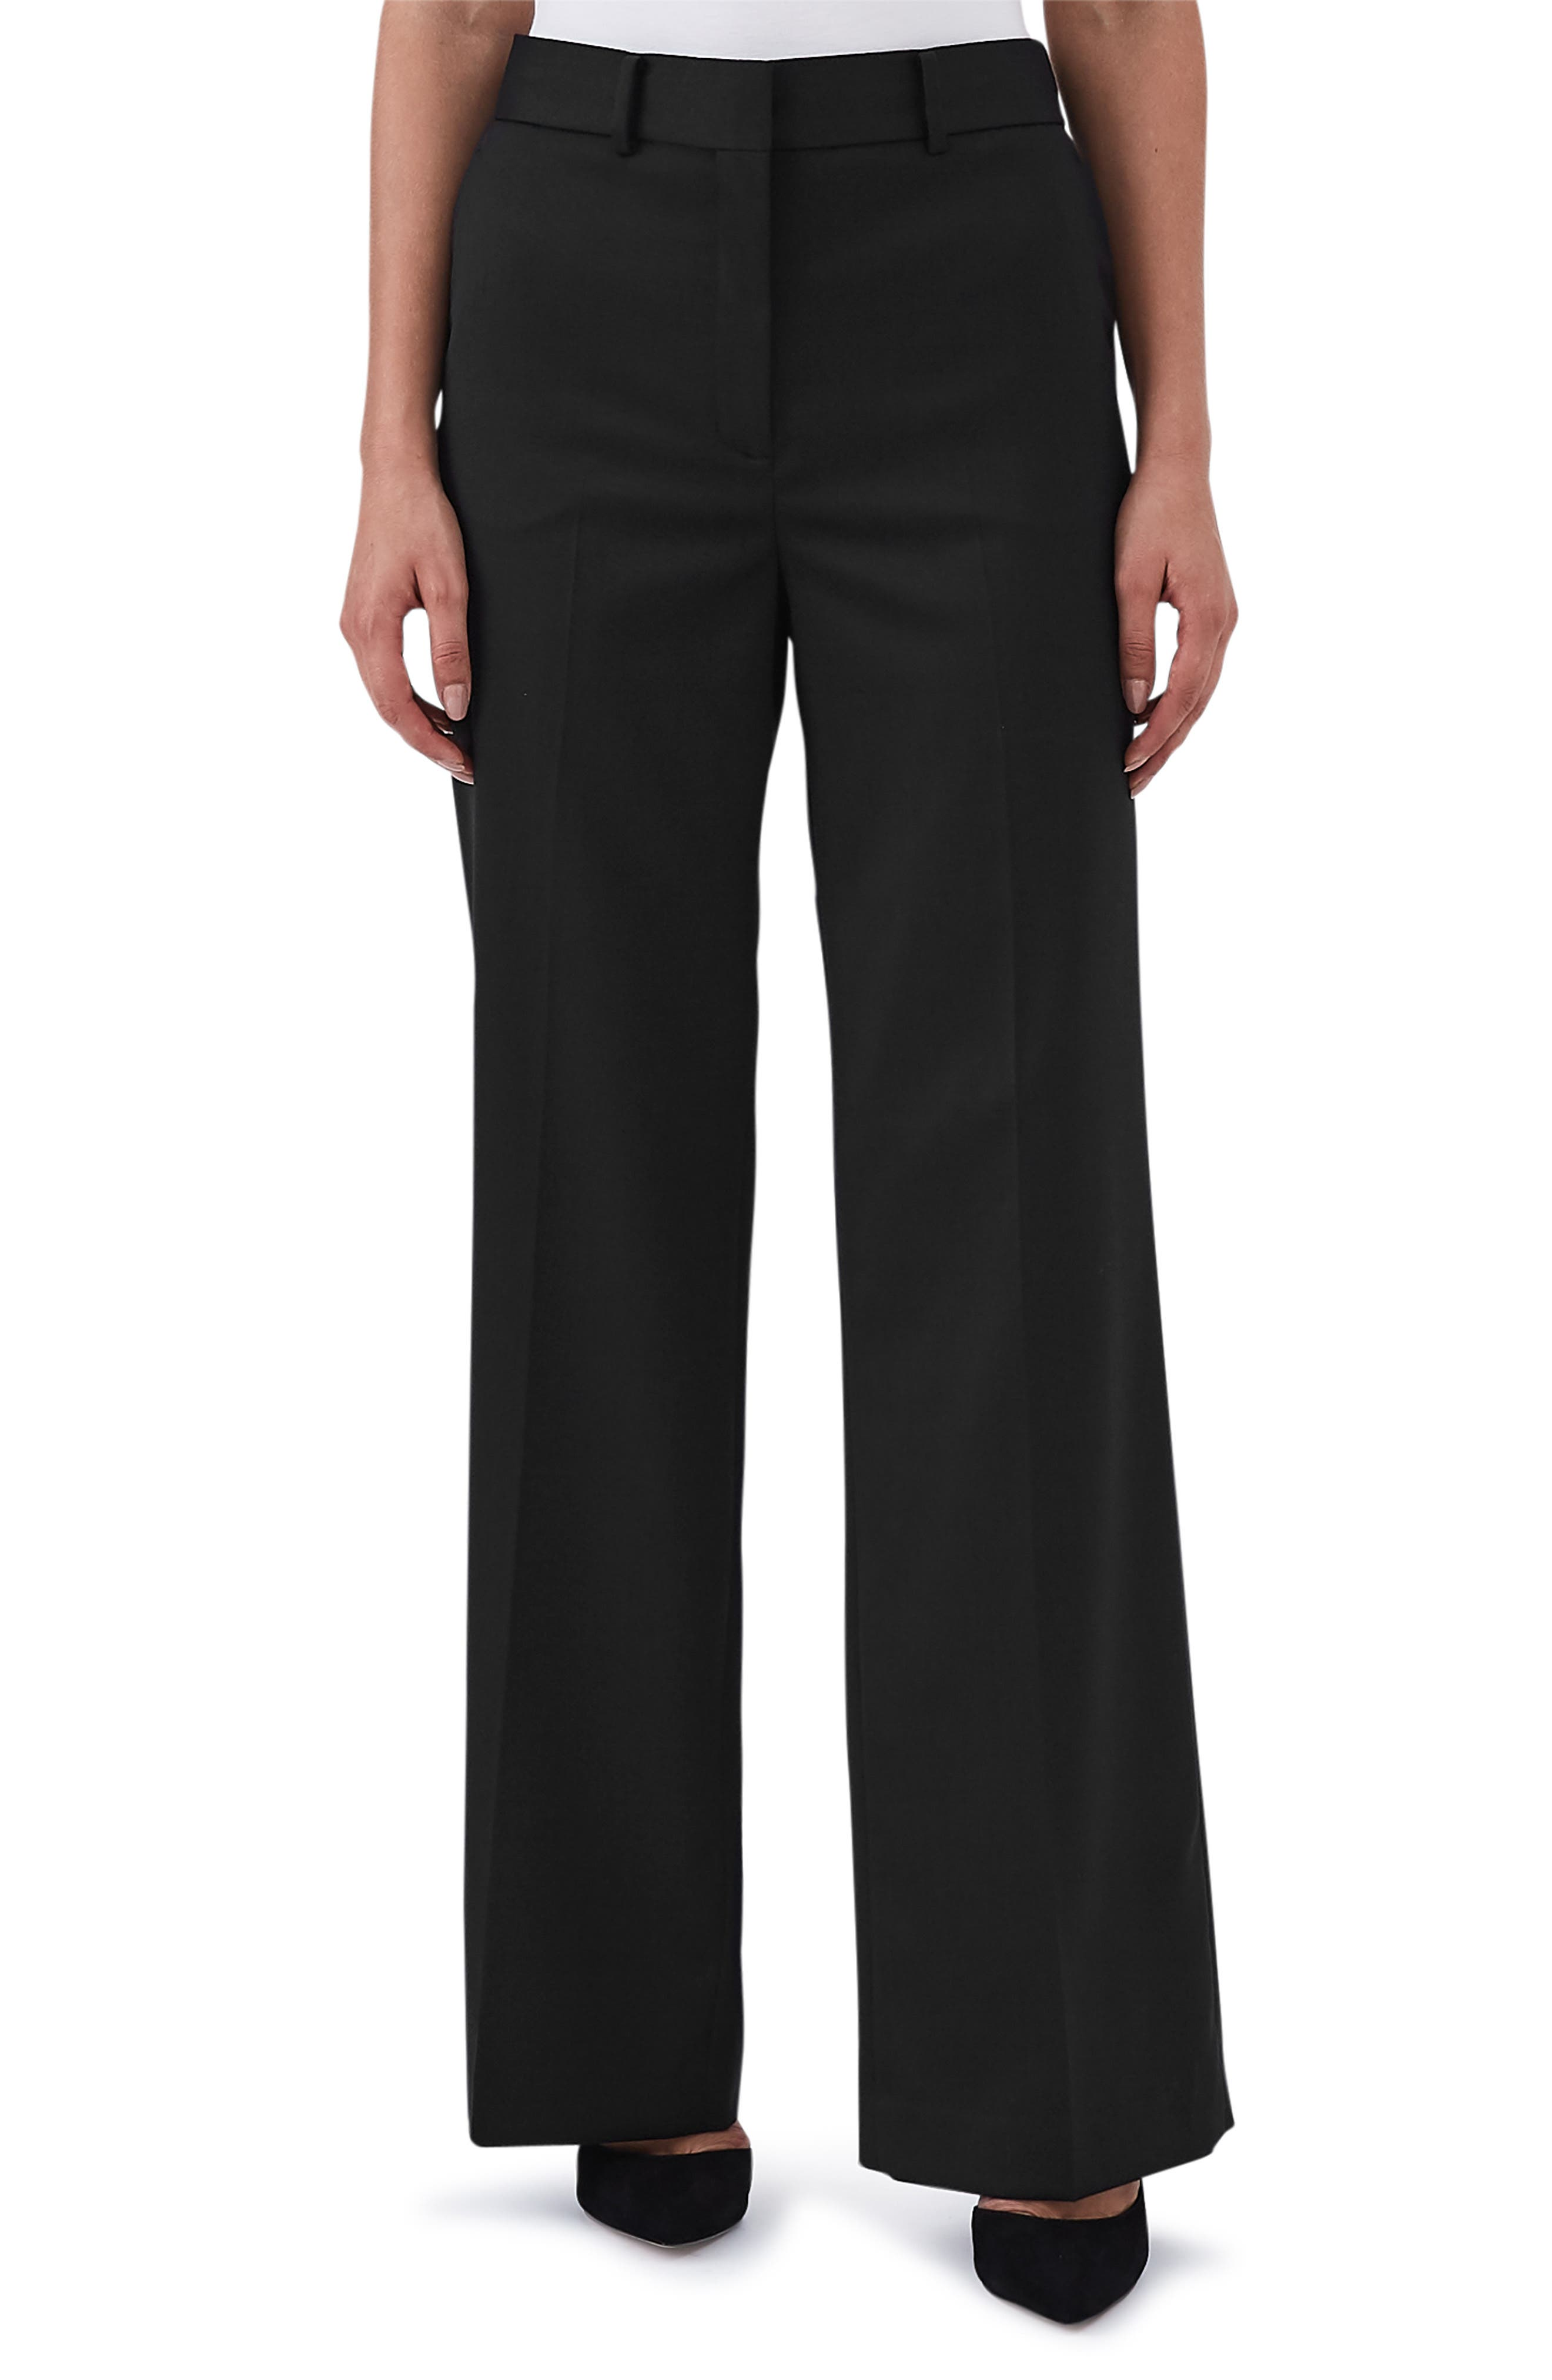 REISS Harper Wide Leg Stretch Wool Trousers in Black